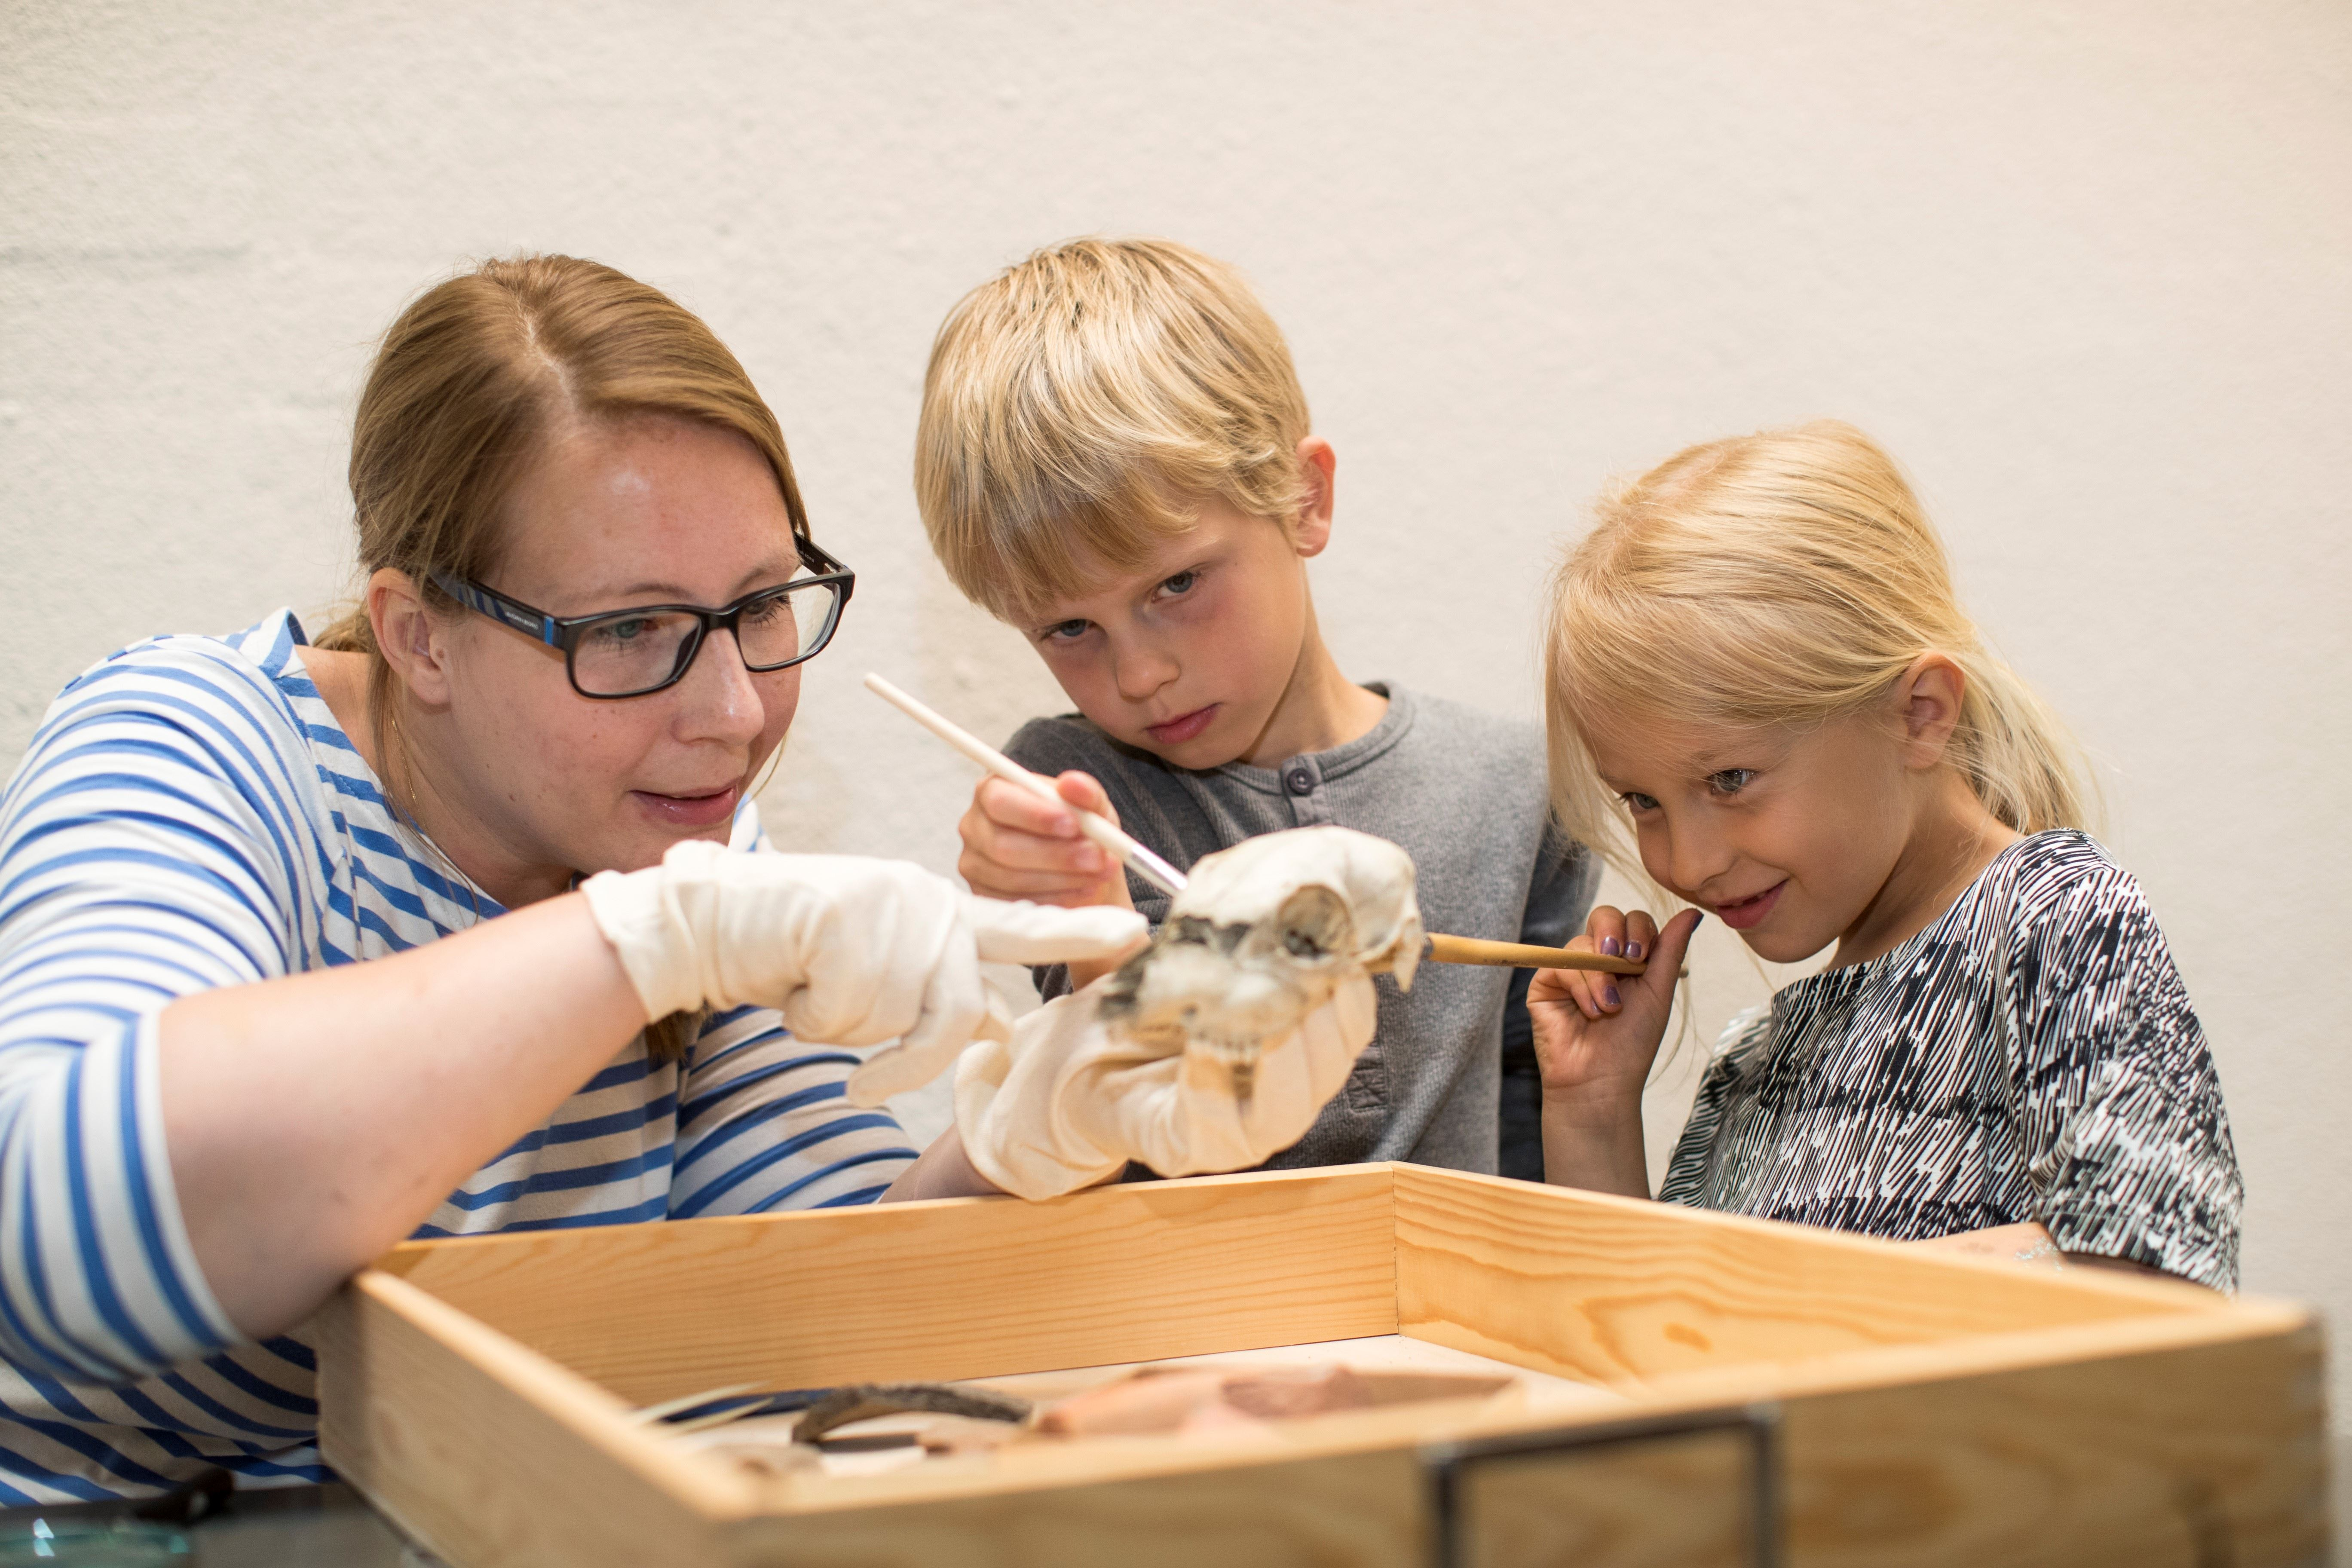 Activities for school children: A day as an archaeologist